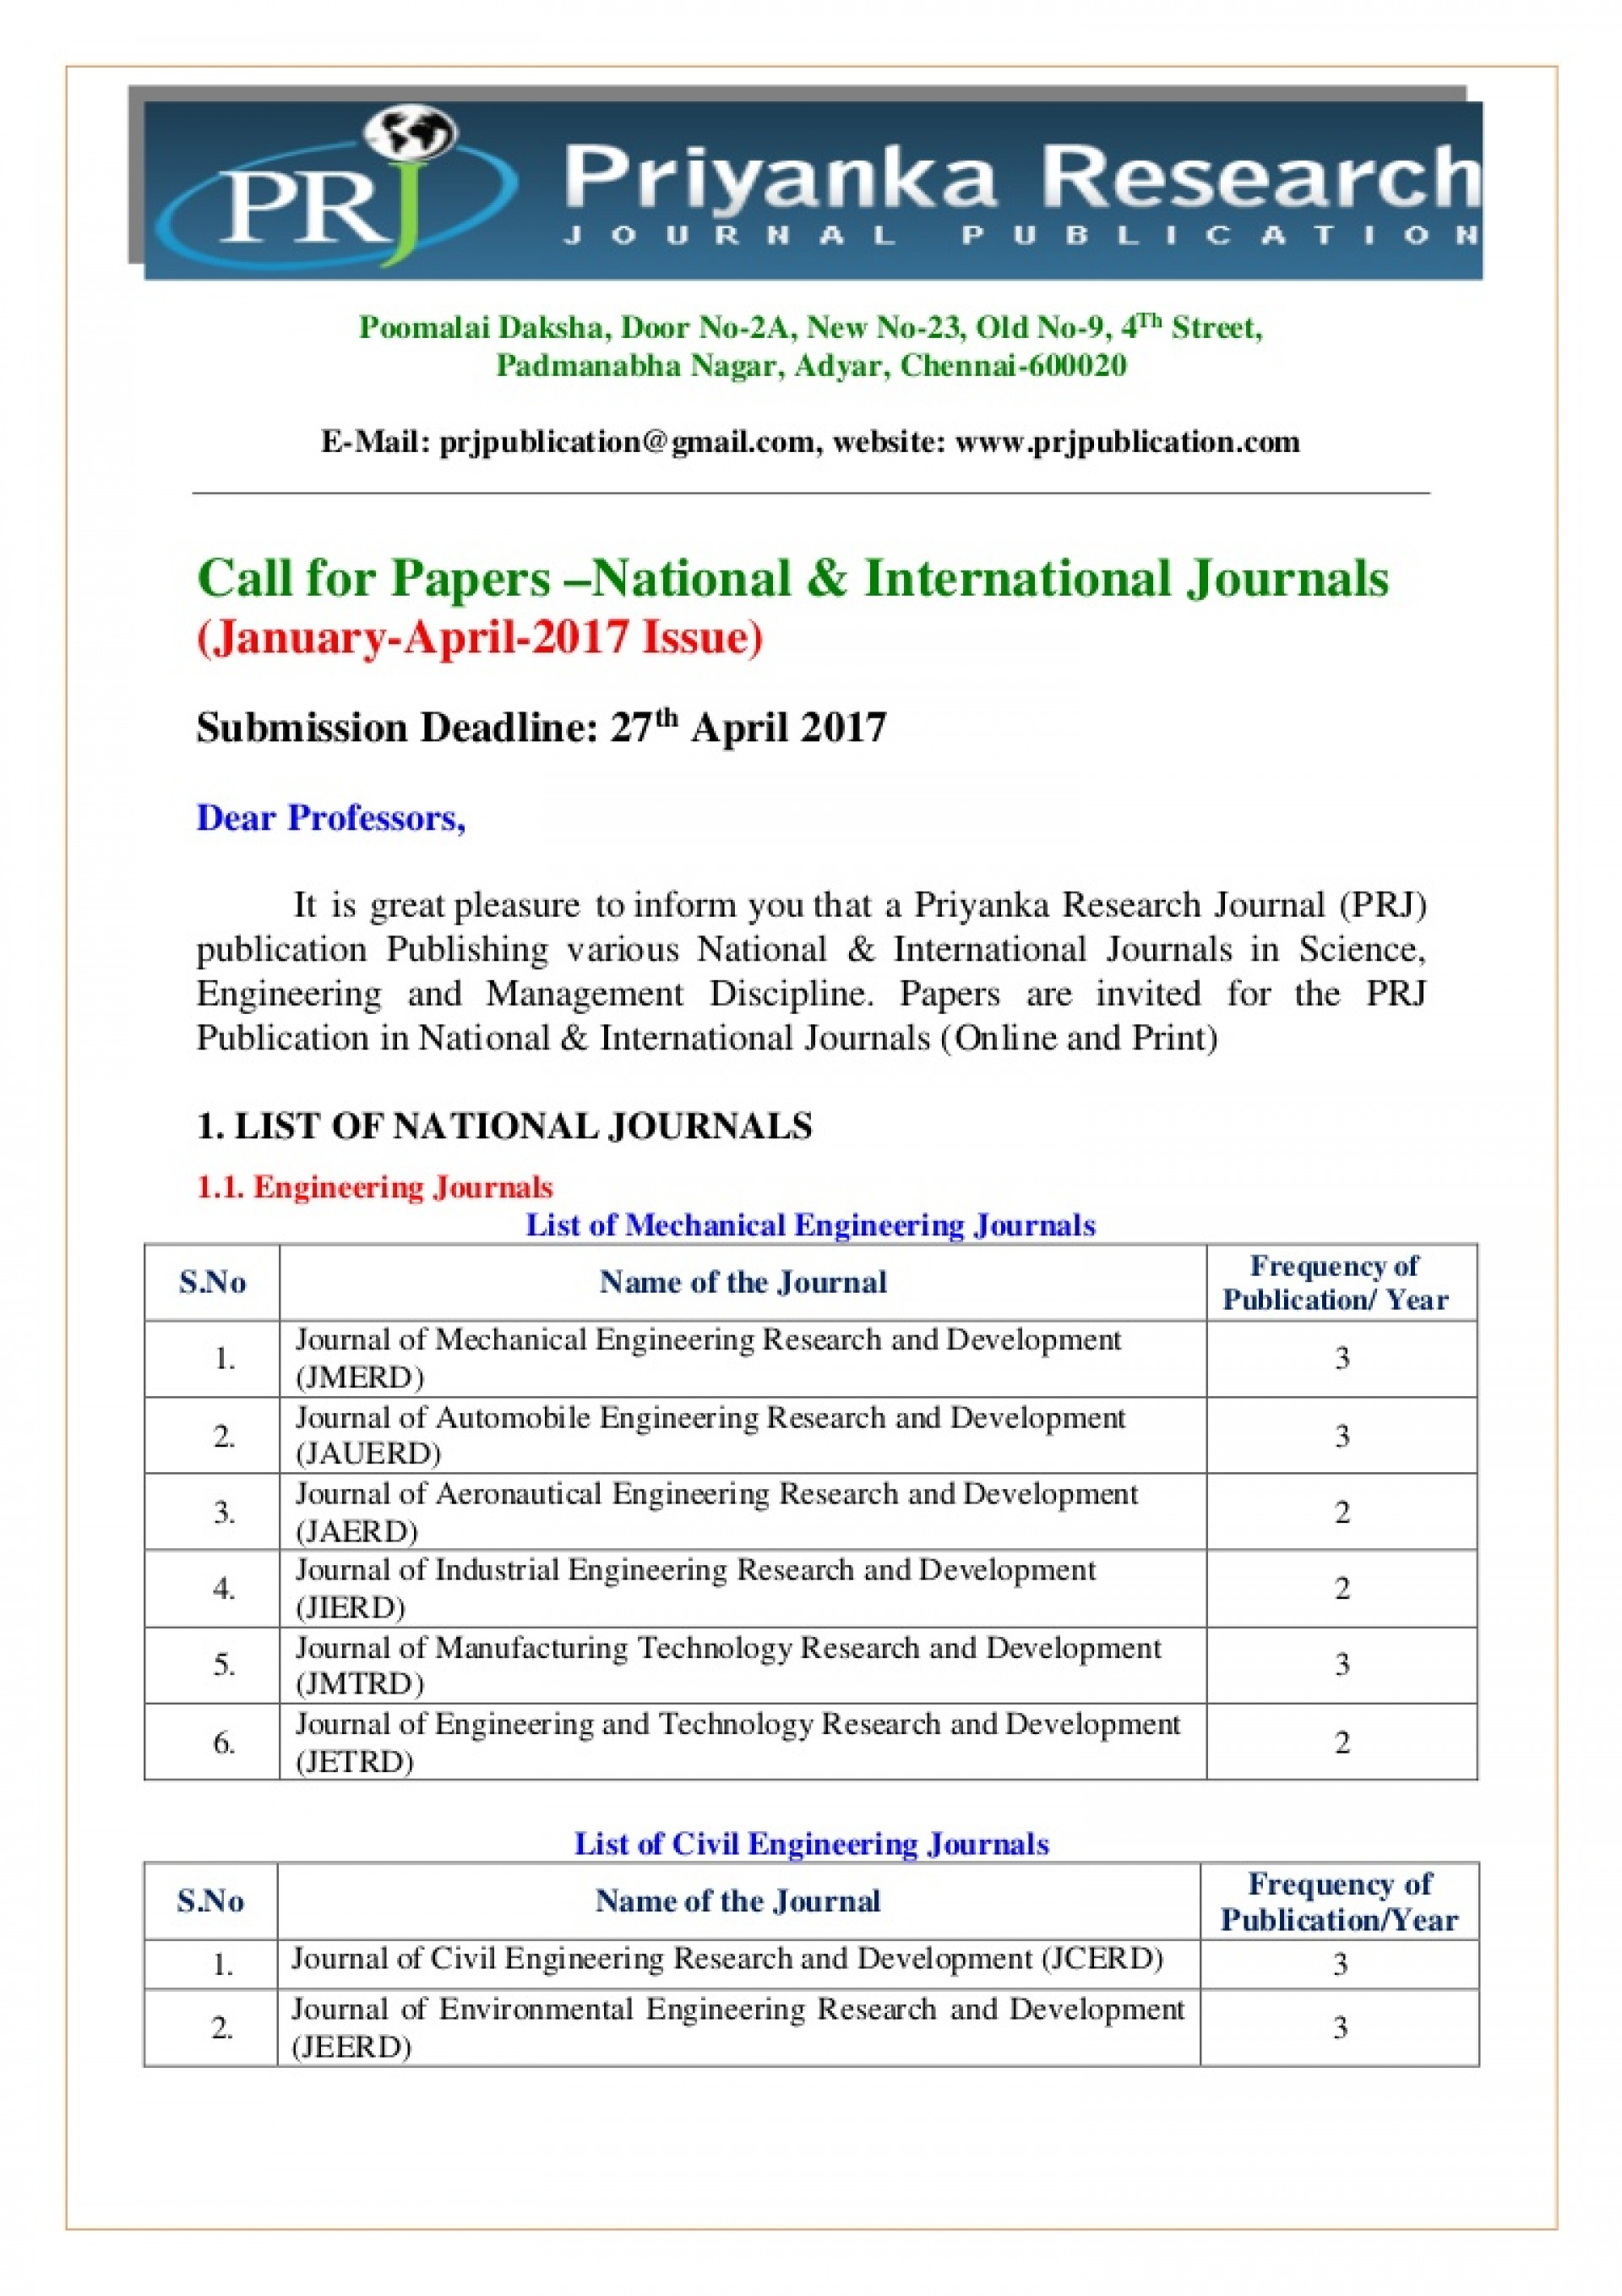 008 Prjpublicationcallforpaperjanapril2017 Thumbnail How To Publish Management Research Paper In International Archaicawful A Journal 1920